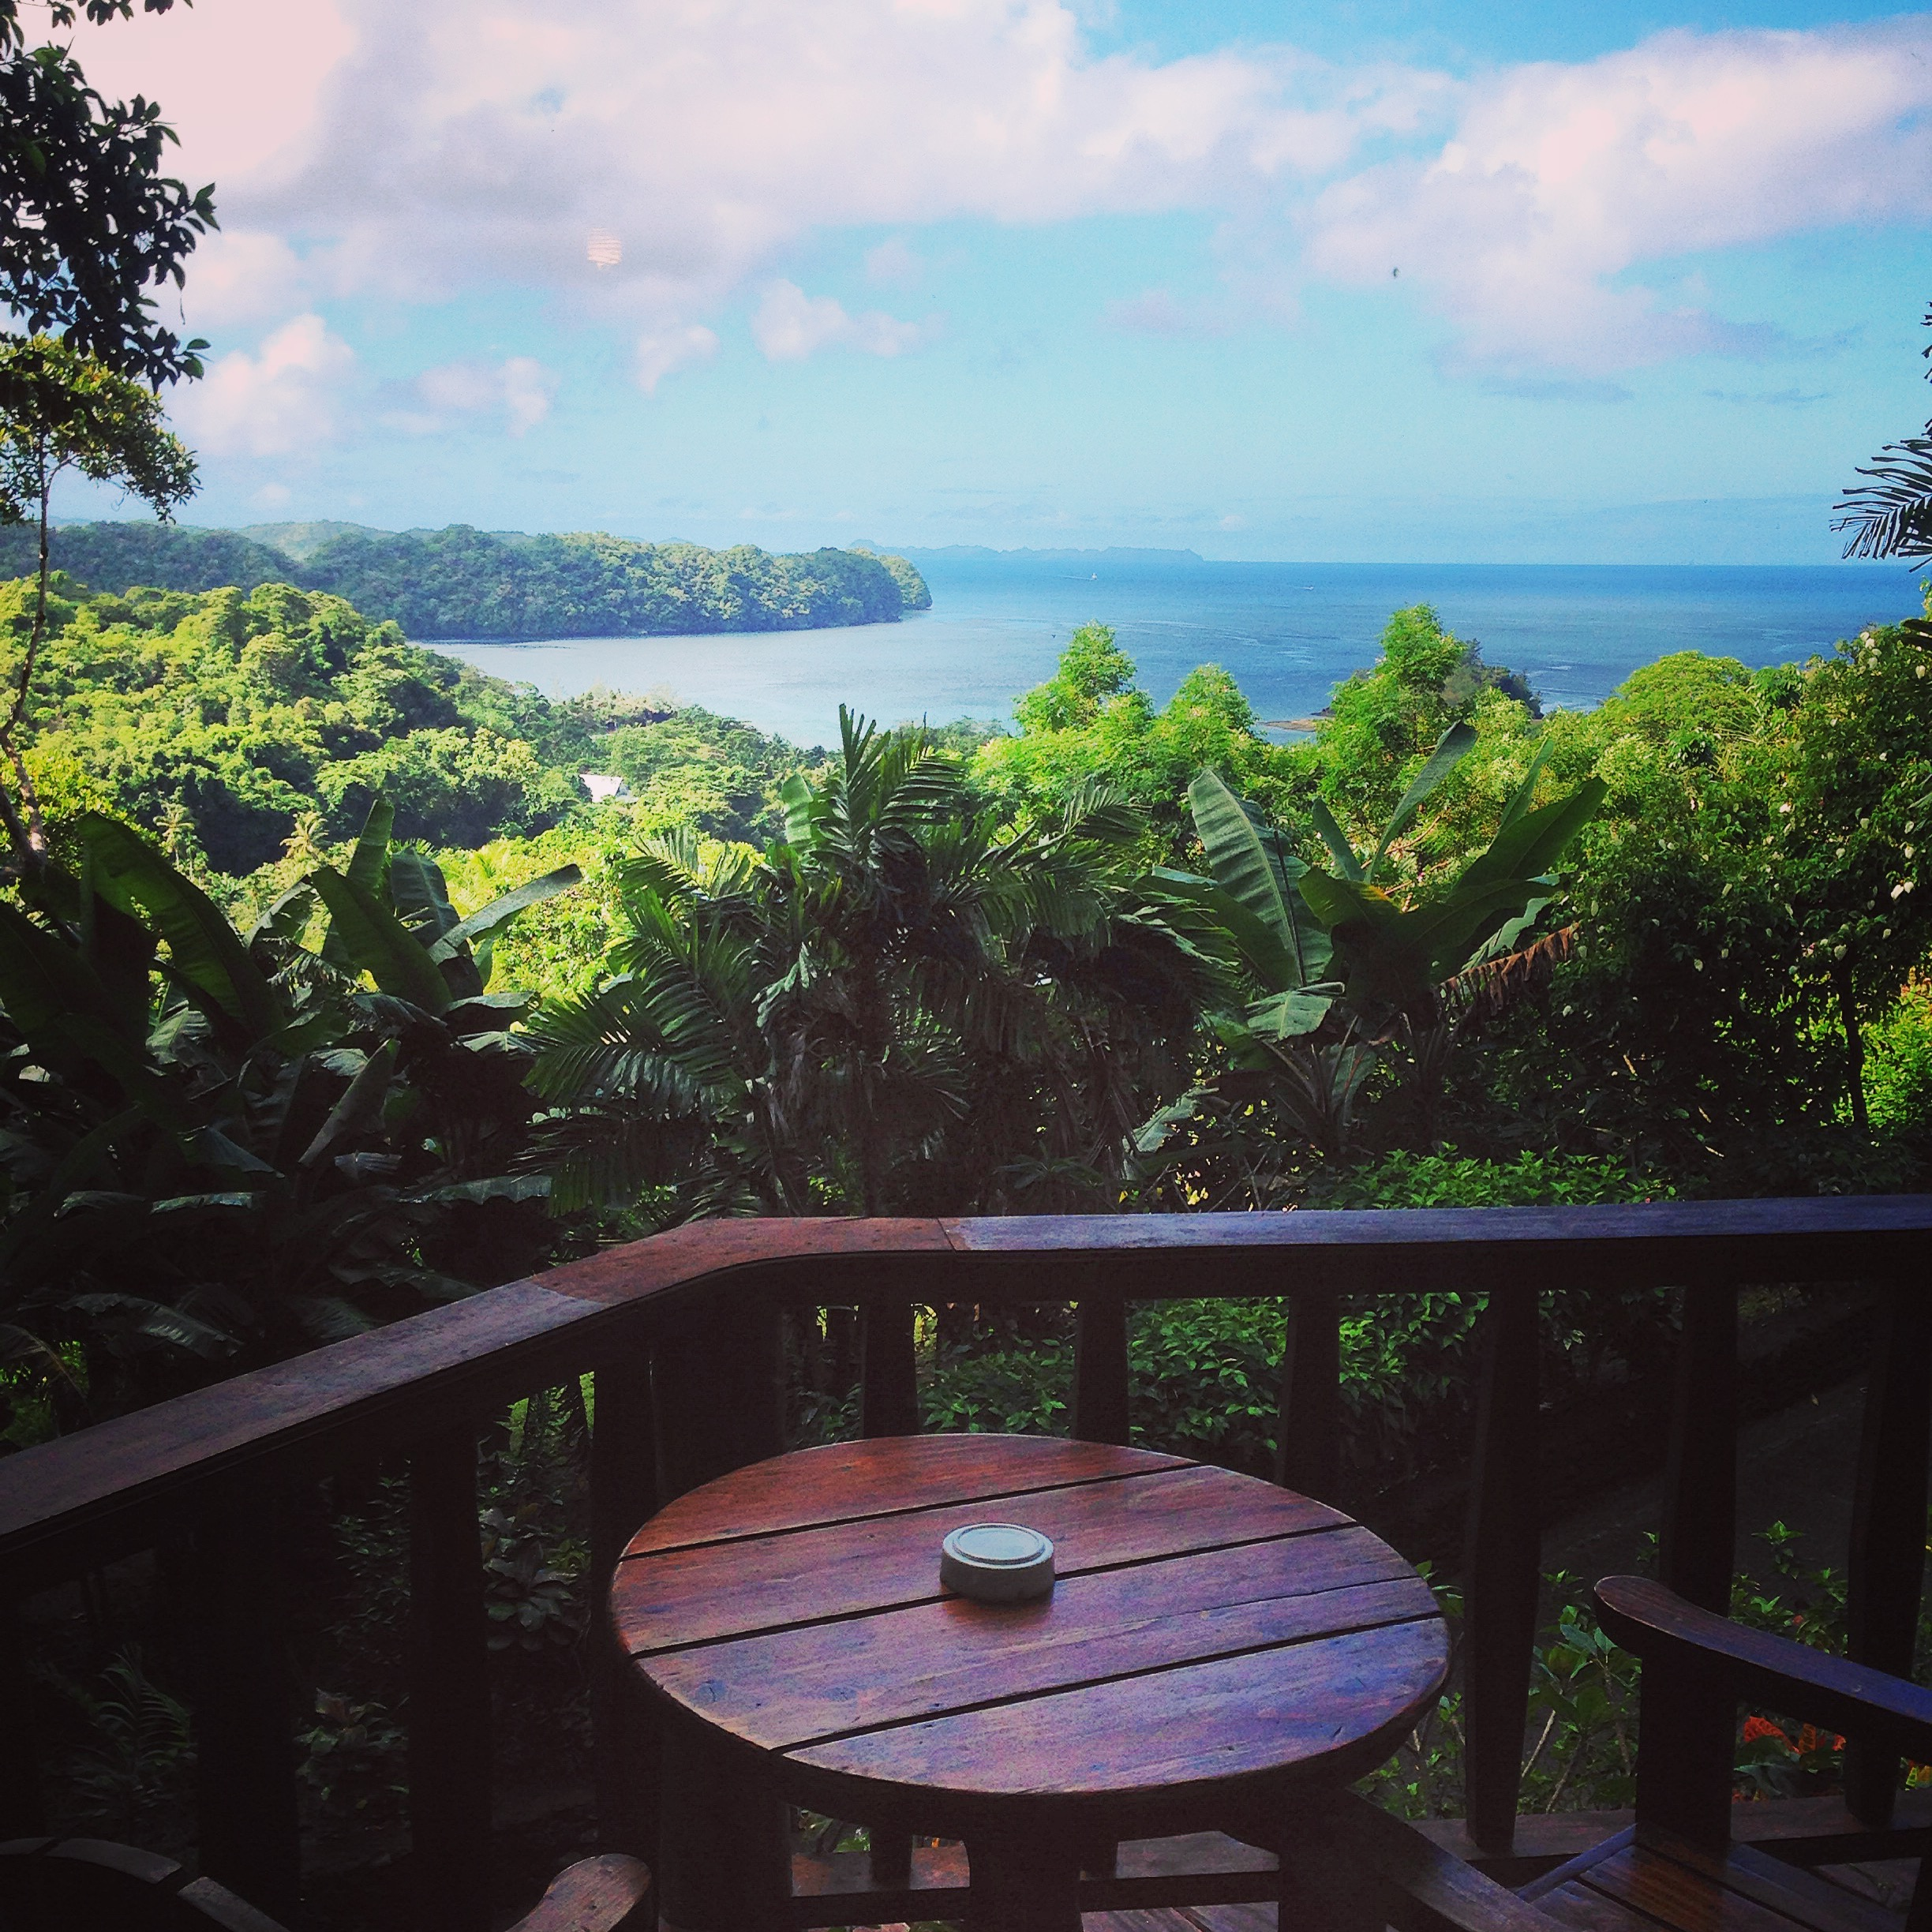 Travel hacking to have breakfast in Palau